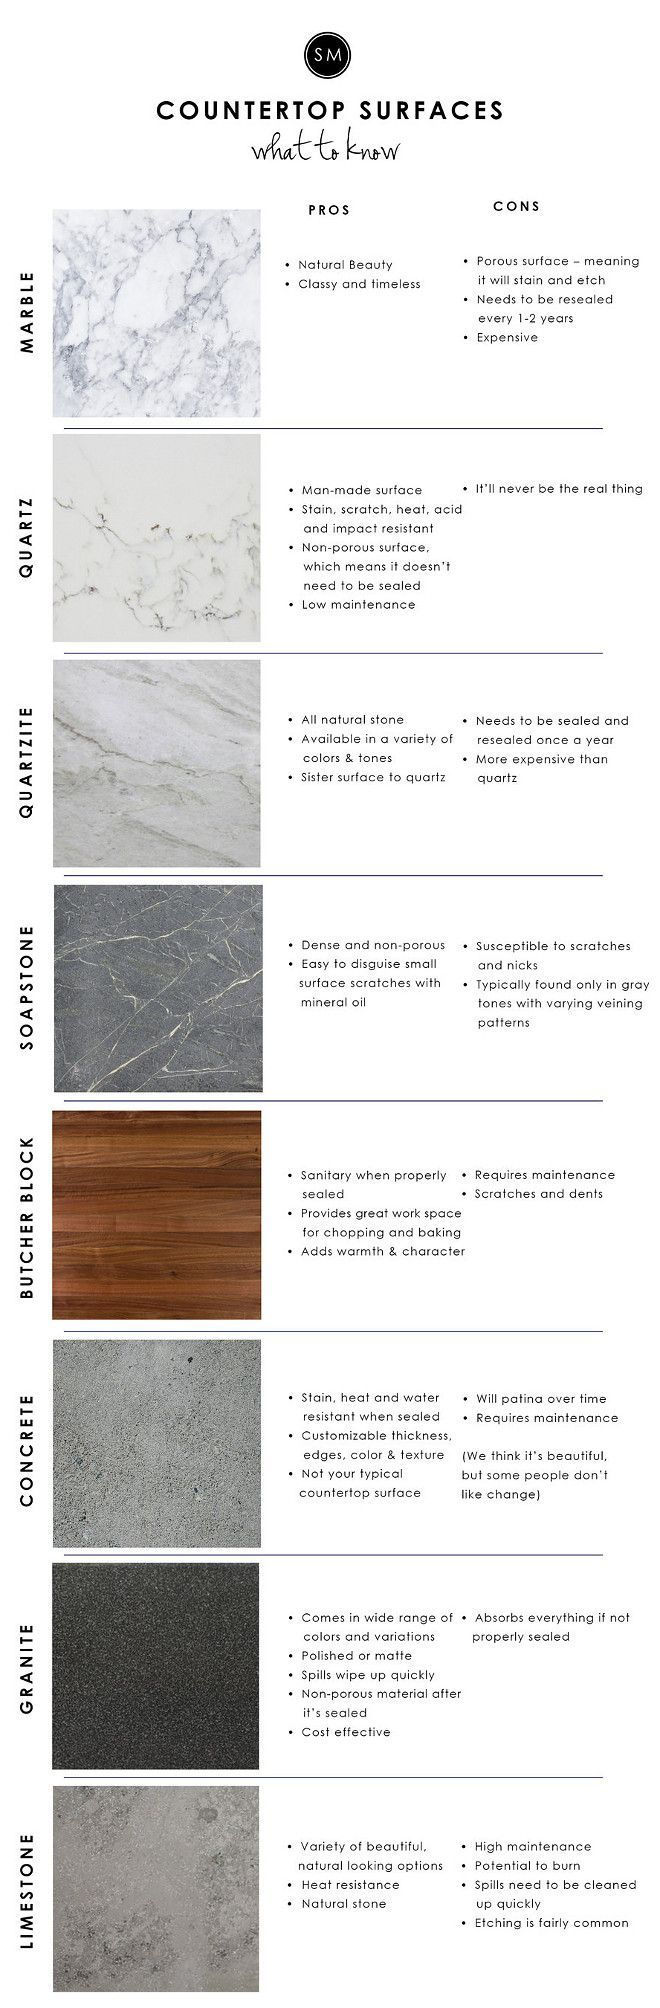 Grigio msi quartz denver shower doors amp denver granite countertops - Countertops Pros And Cons About Marble Quartz Quartzite Soapstone Butcher Block